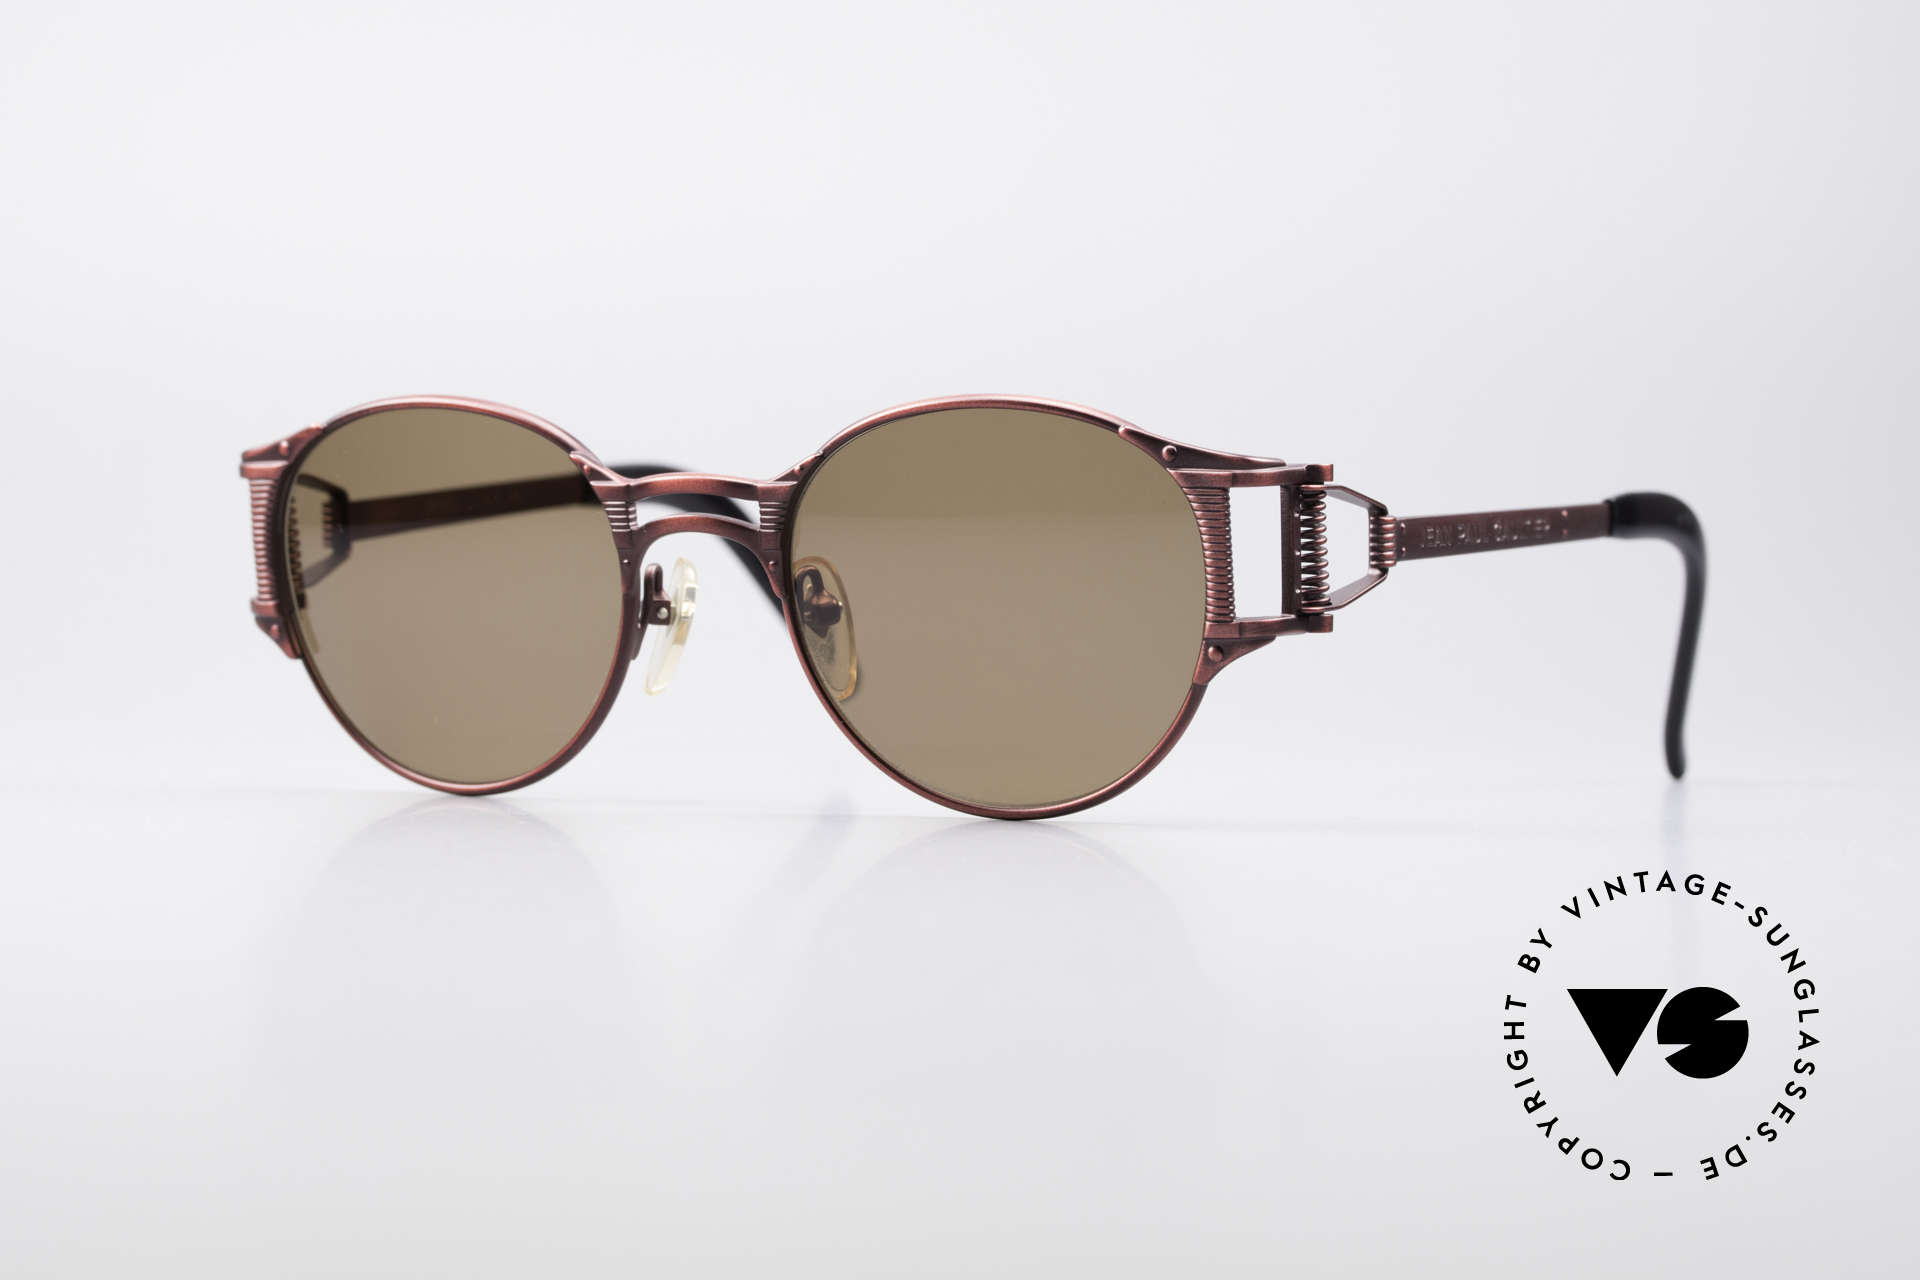 Jean Paul Gaultier 56-5105 Rare Celebrity Sunglasses, unique 'Haute Couture' shades by Jean Paul Gaultier, Made for Men and Women